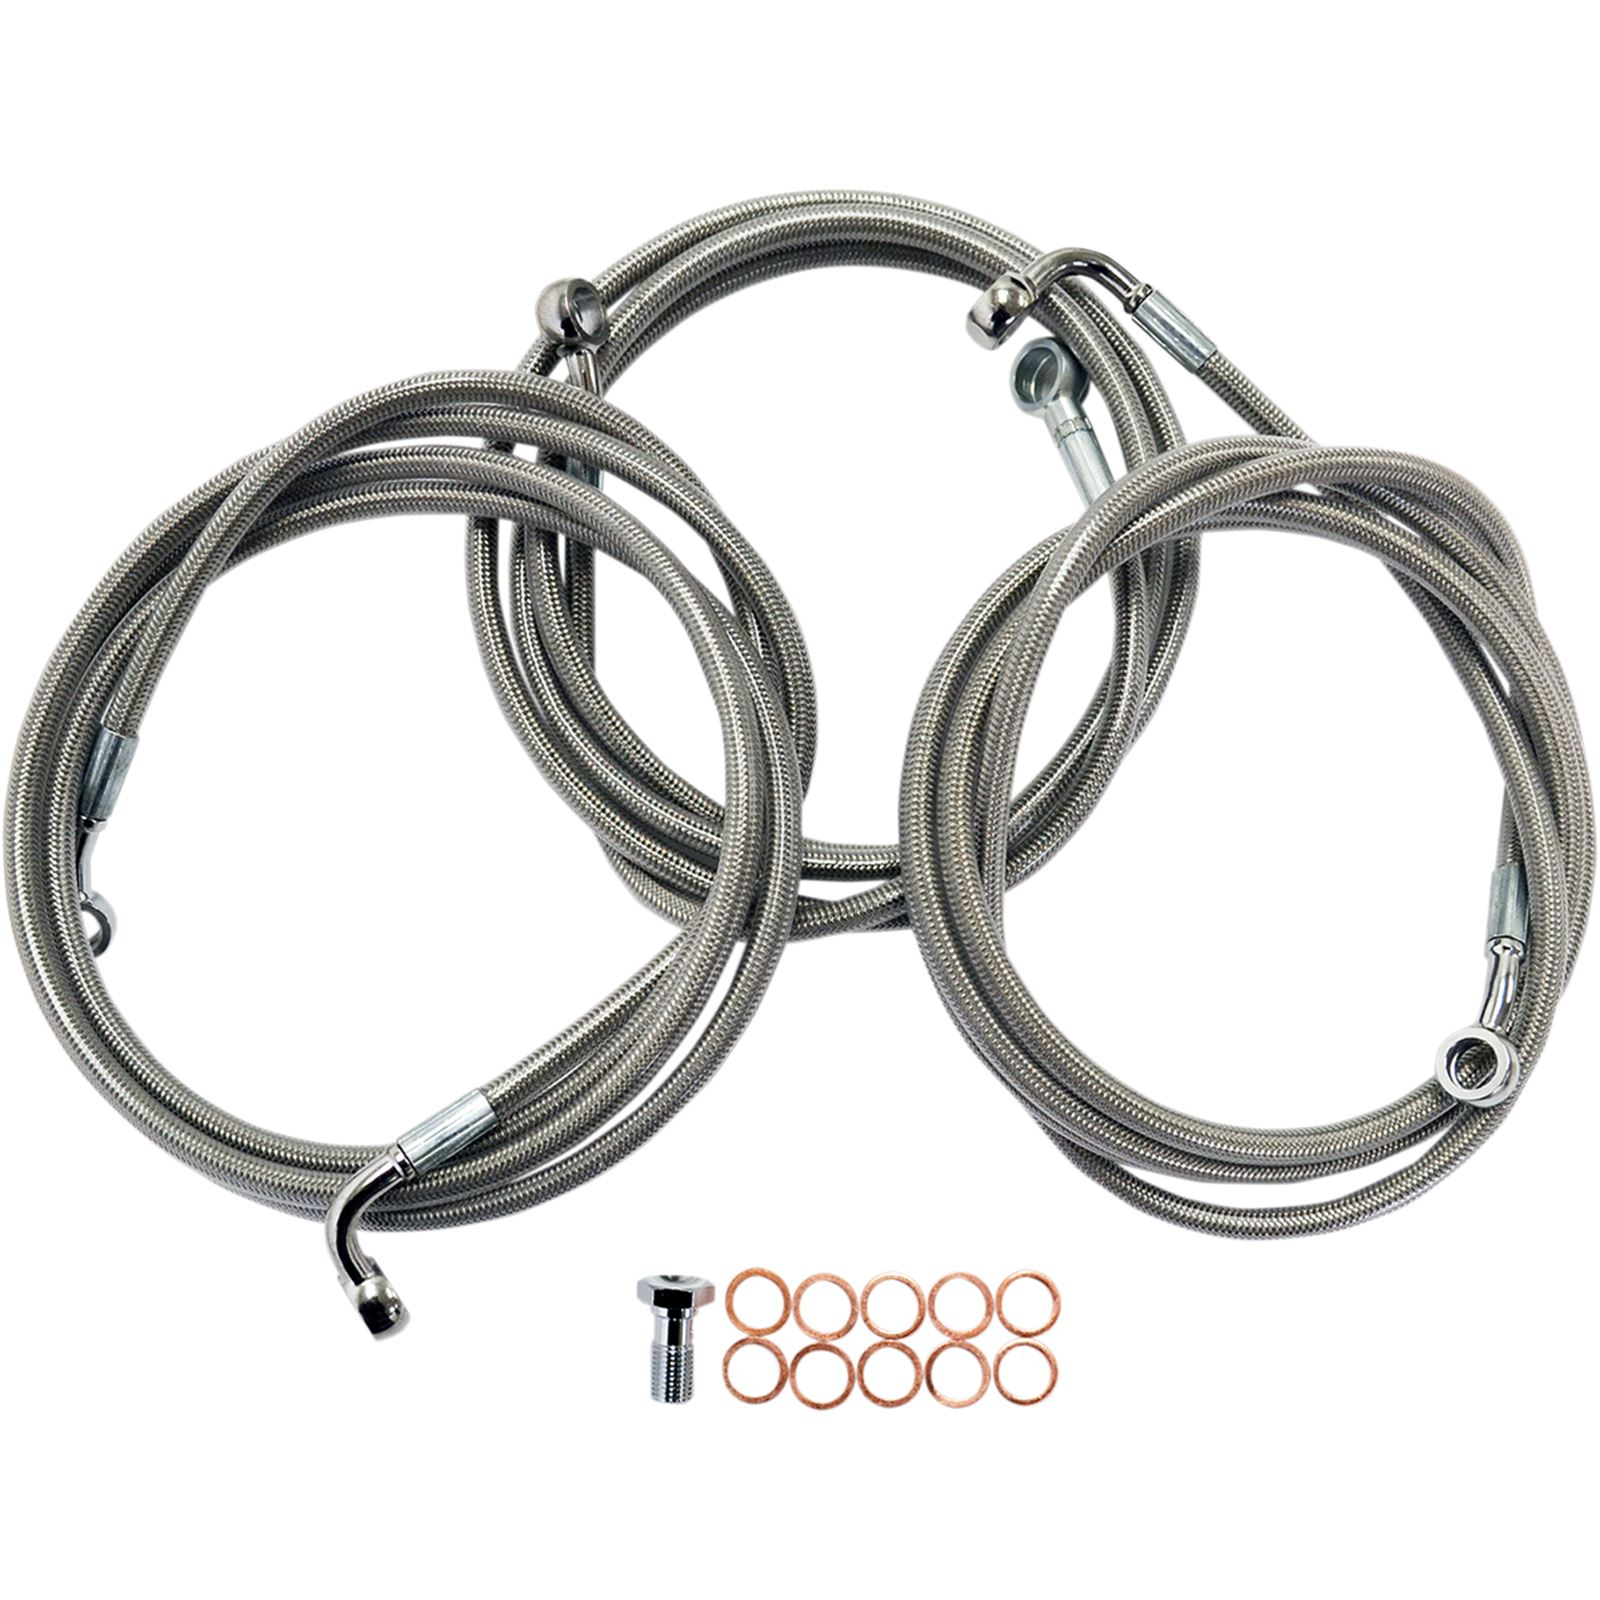 LA Choppers Stainless Steel Brake Lines - Touring ABS